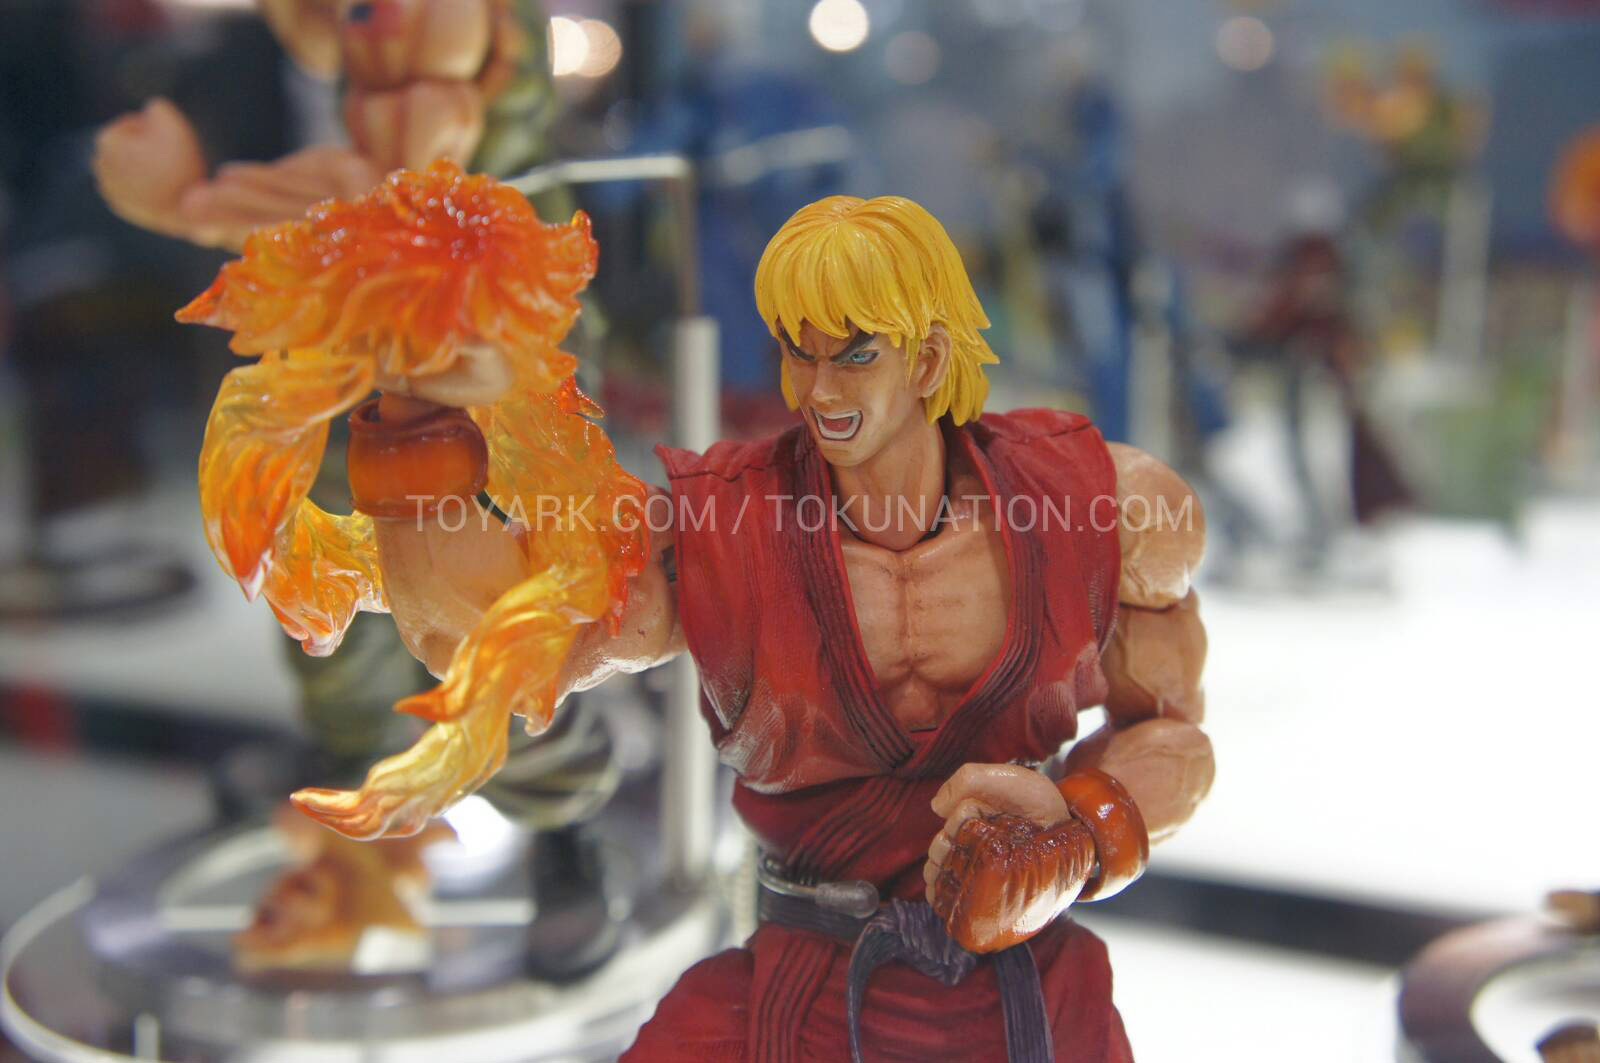 Play Arts Kai positionable figurines #01